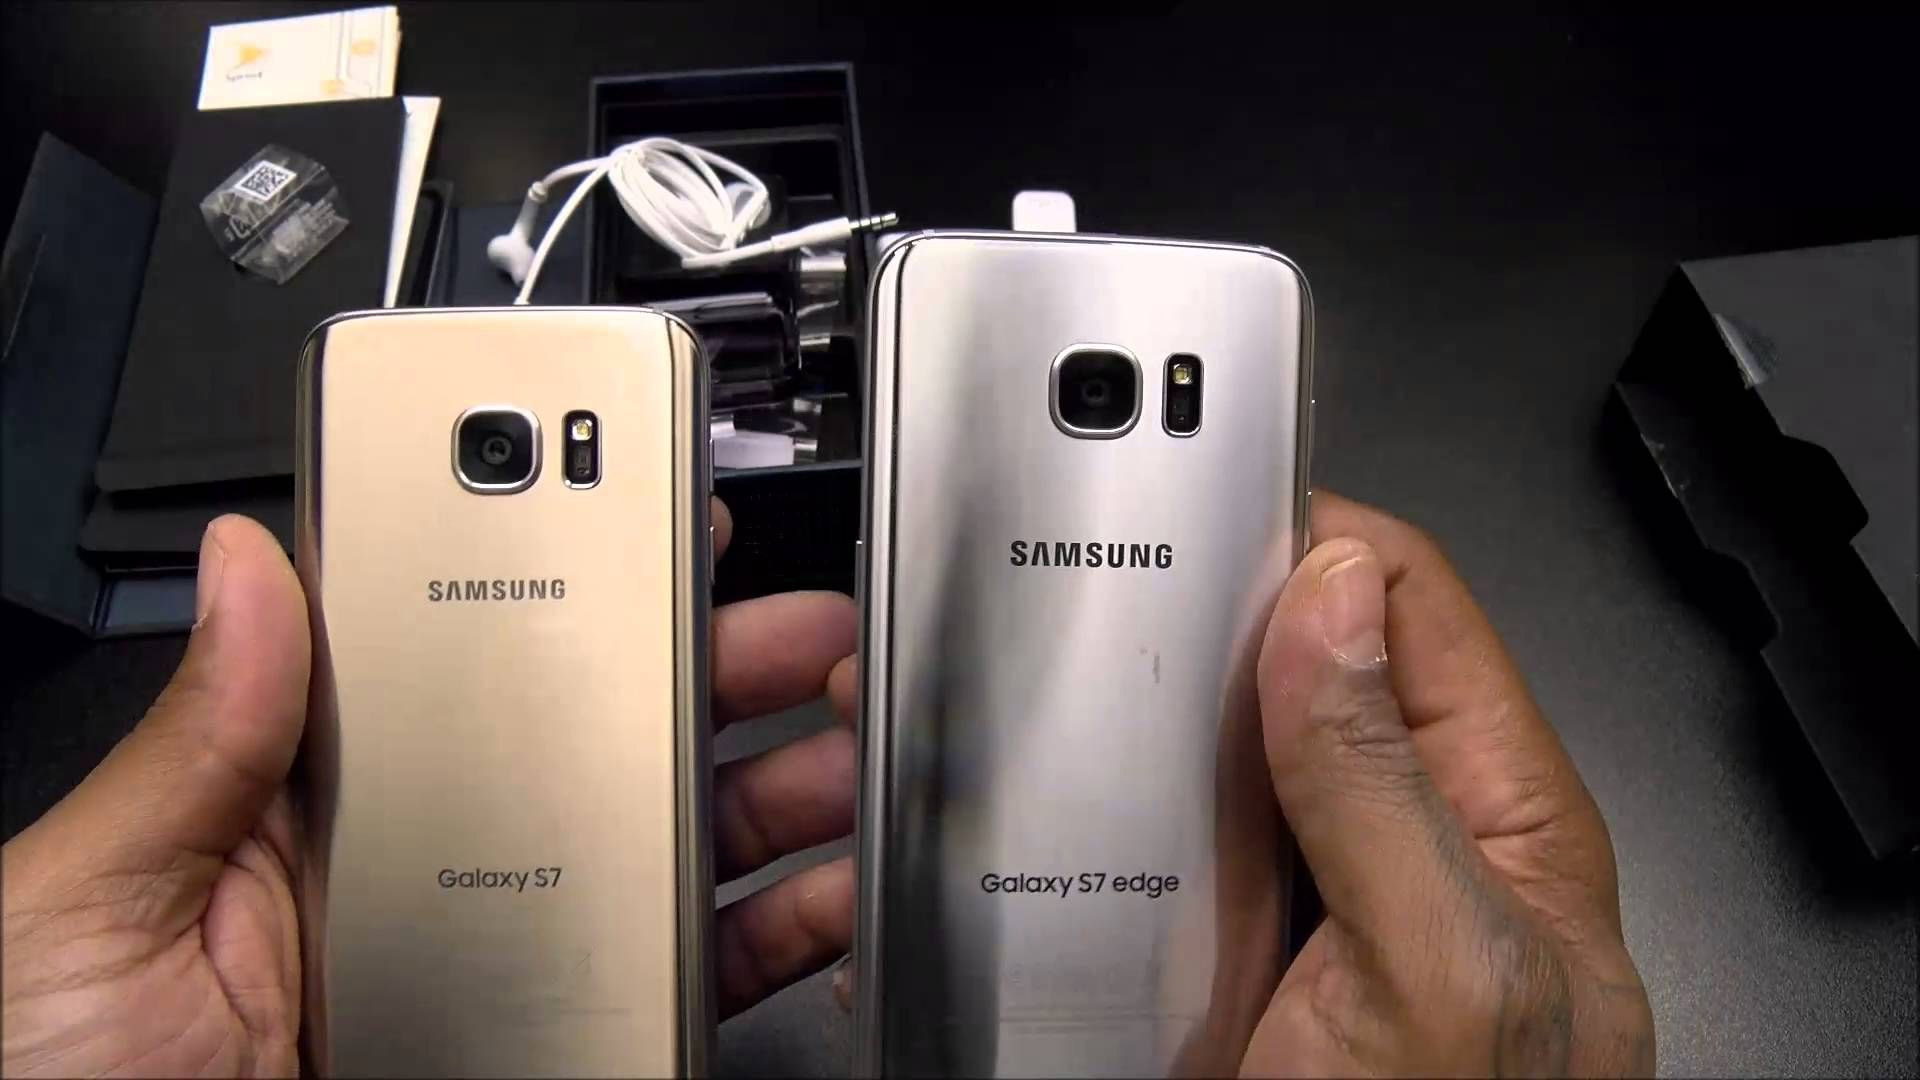 Samsung galaxy s7 edge unboxing deutsch 4k youtube - Nice Iphone 7 Vs Samsung Galaxy S7 Le Gros Comparatif Check More At Http Gadgetsnetworks Com Iphone 7 Vs Samsung Galaxy S7 Le Gros Comparatif